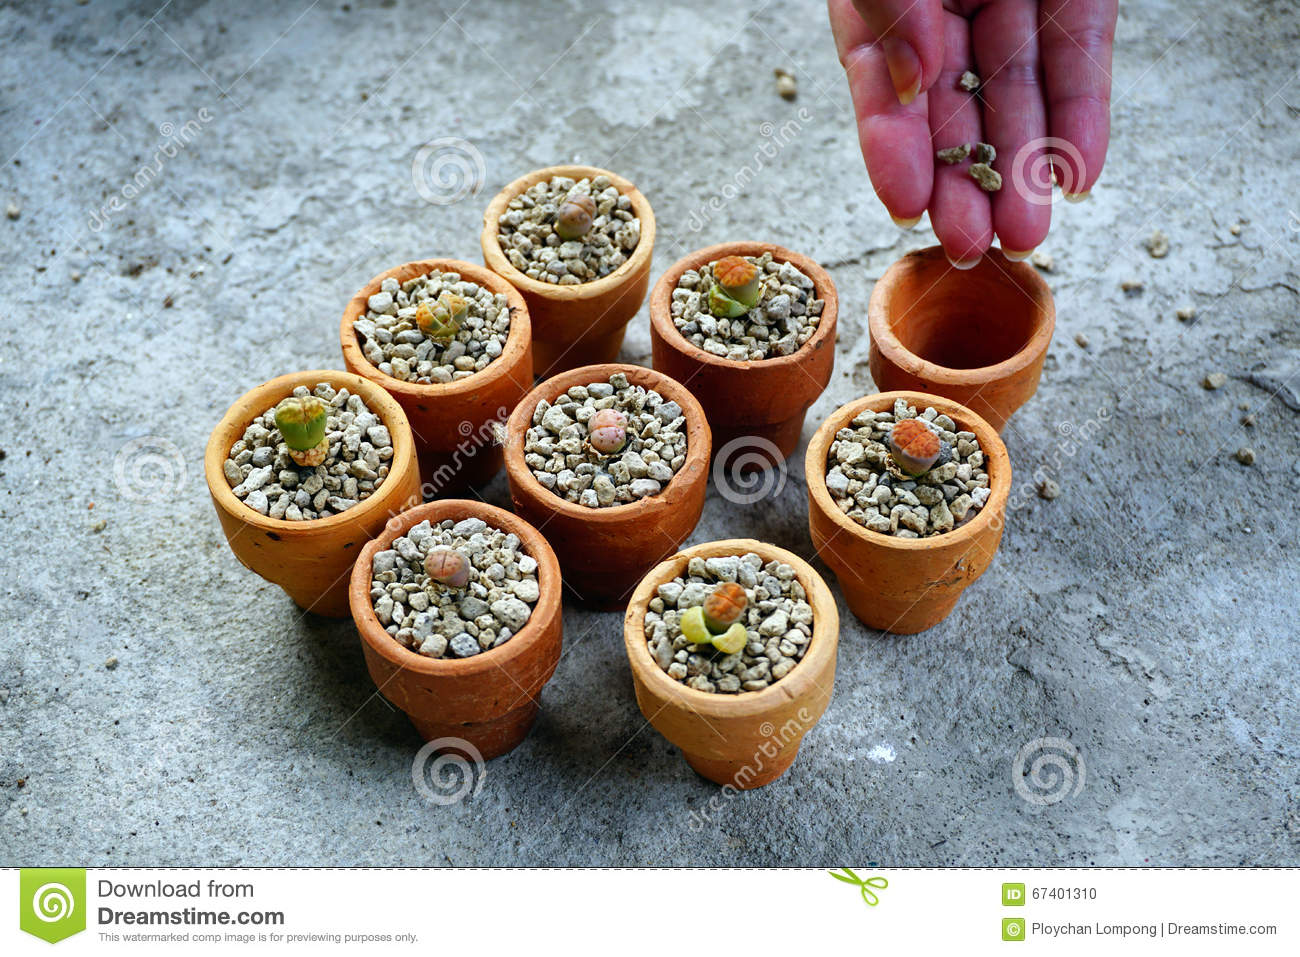 Cactus Planting Pots Cactus Lithop In Pots Stock Photo Image 67401310